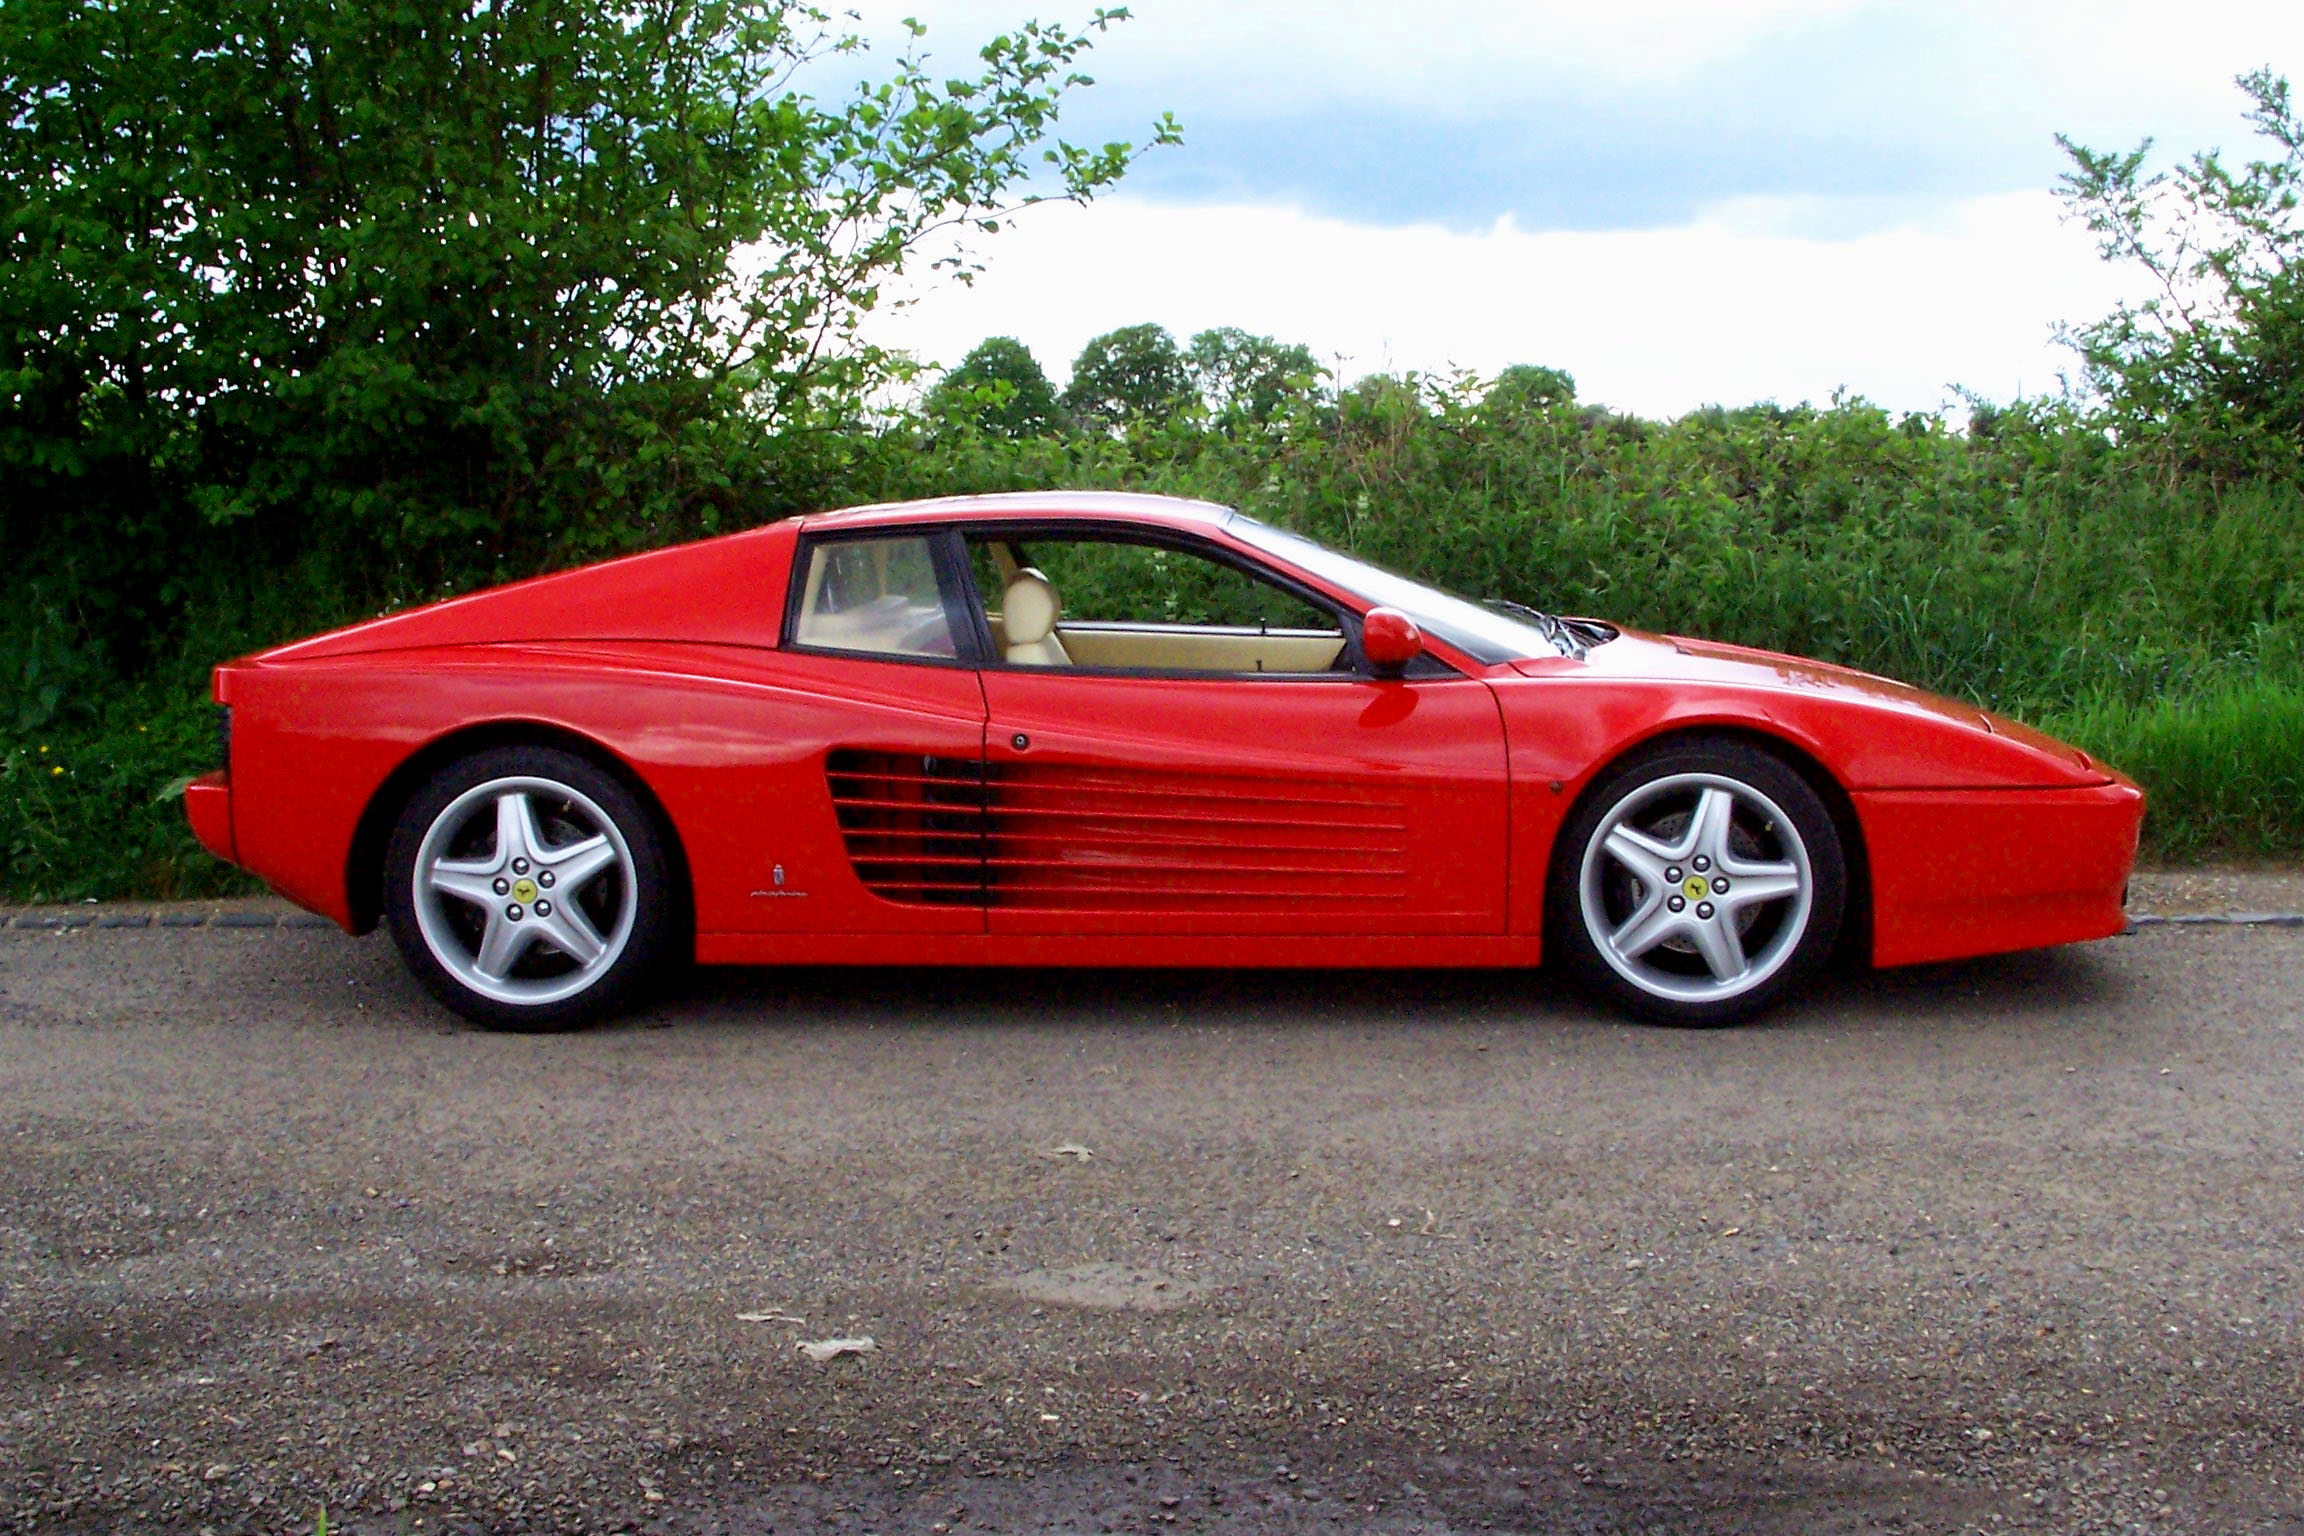 file:ferrari 512 tr 2 - wikimedia commons